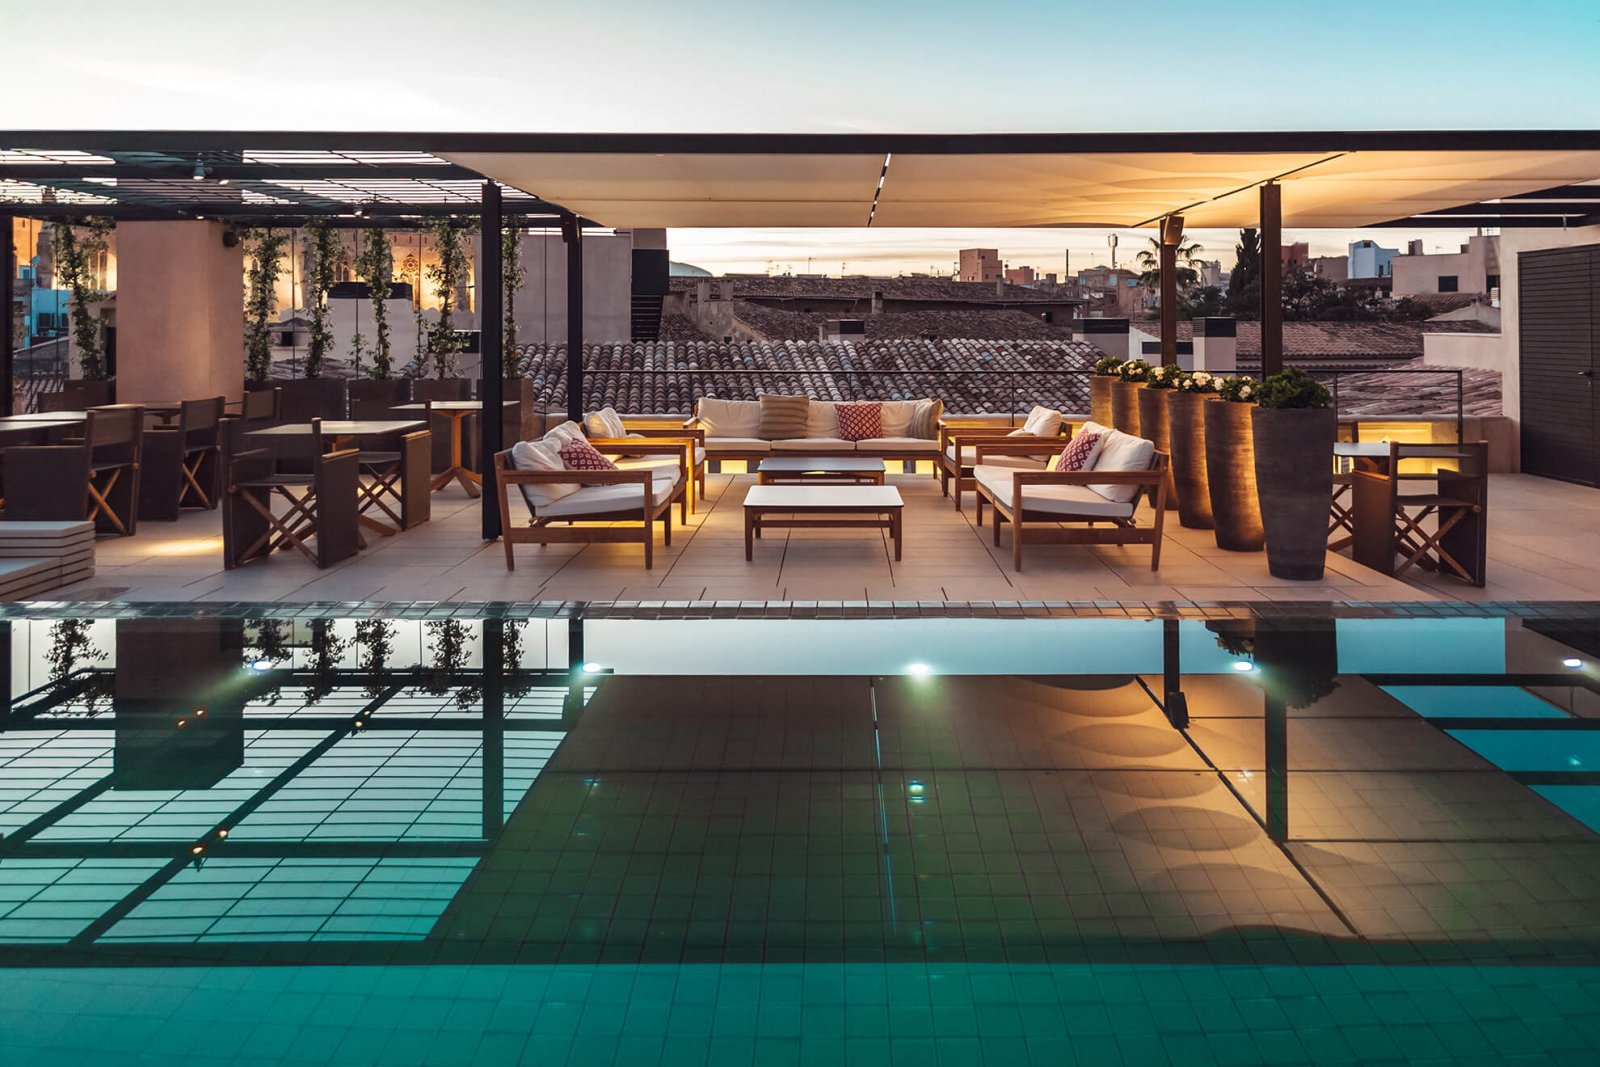 Detail view of the pool and covered chillout area at the Sant Francesc Hotel boutique during sunset with views of the city